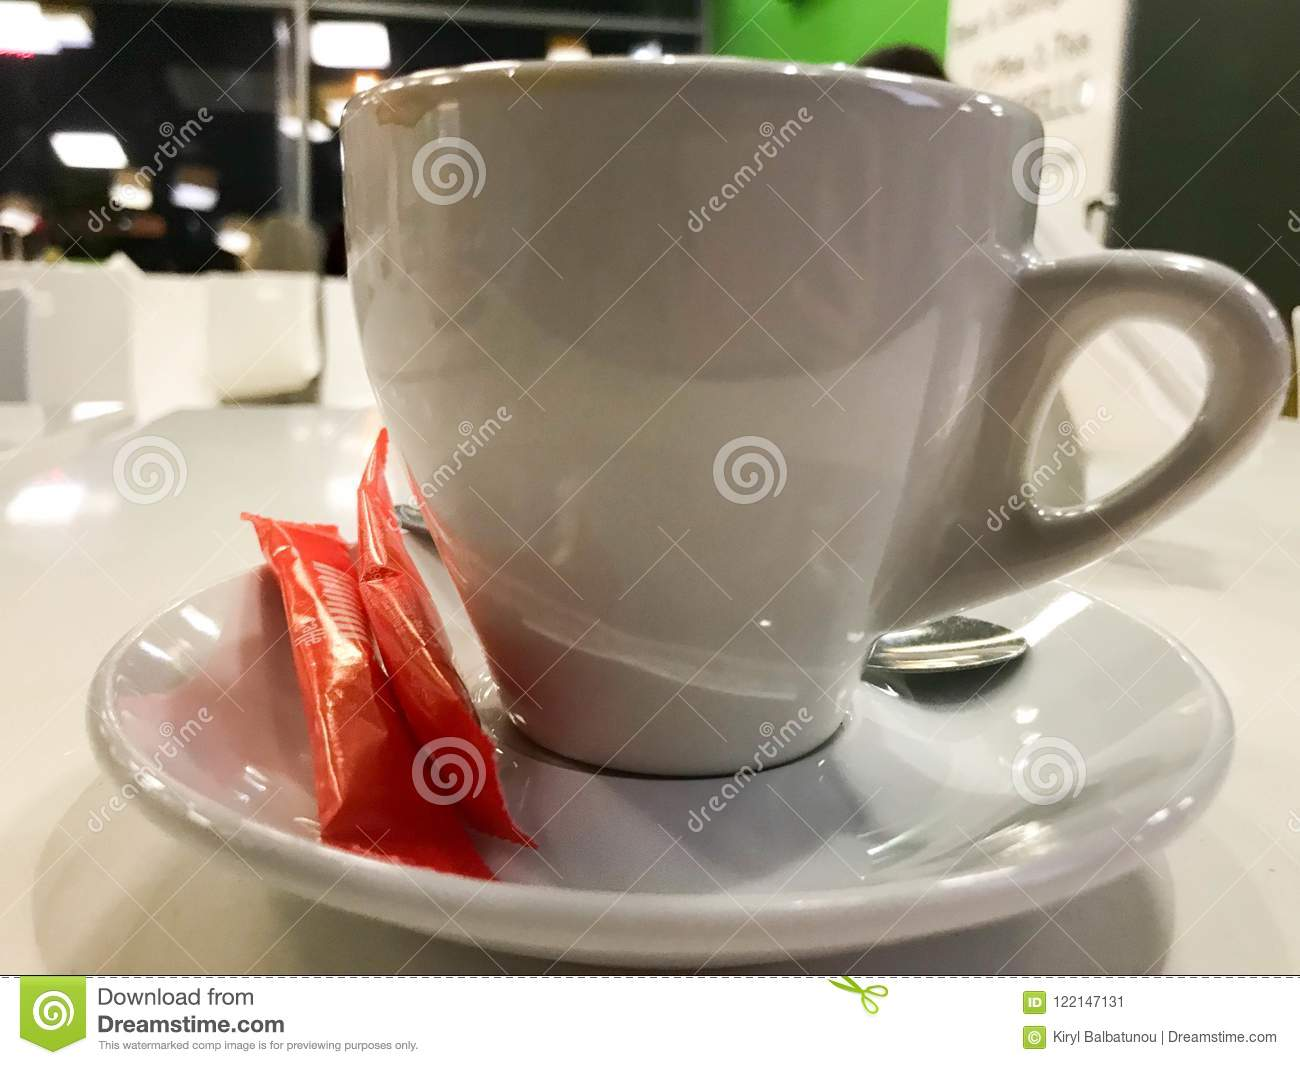 Mug A Cafe A White Glass Ceramic Cup A Mug Of Tea Coffee A Hot Drink